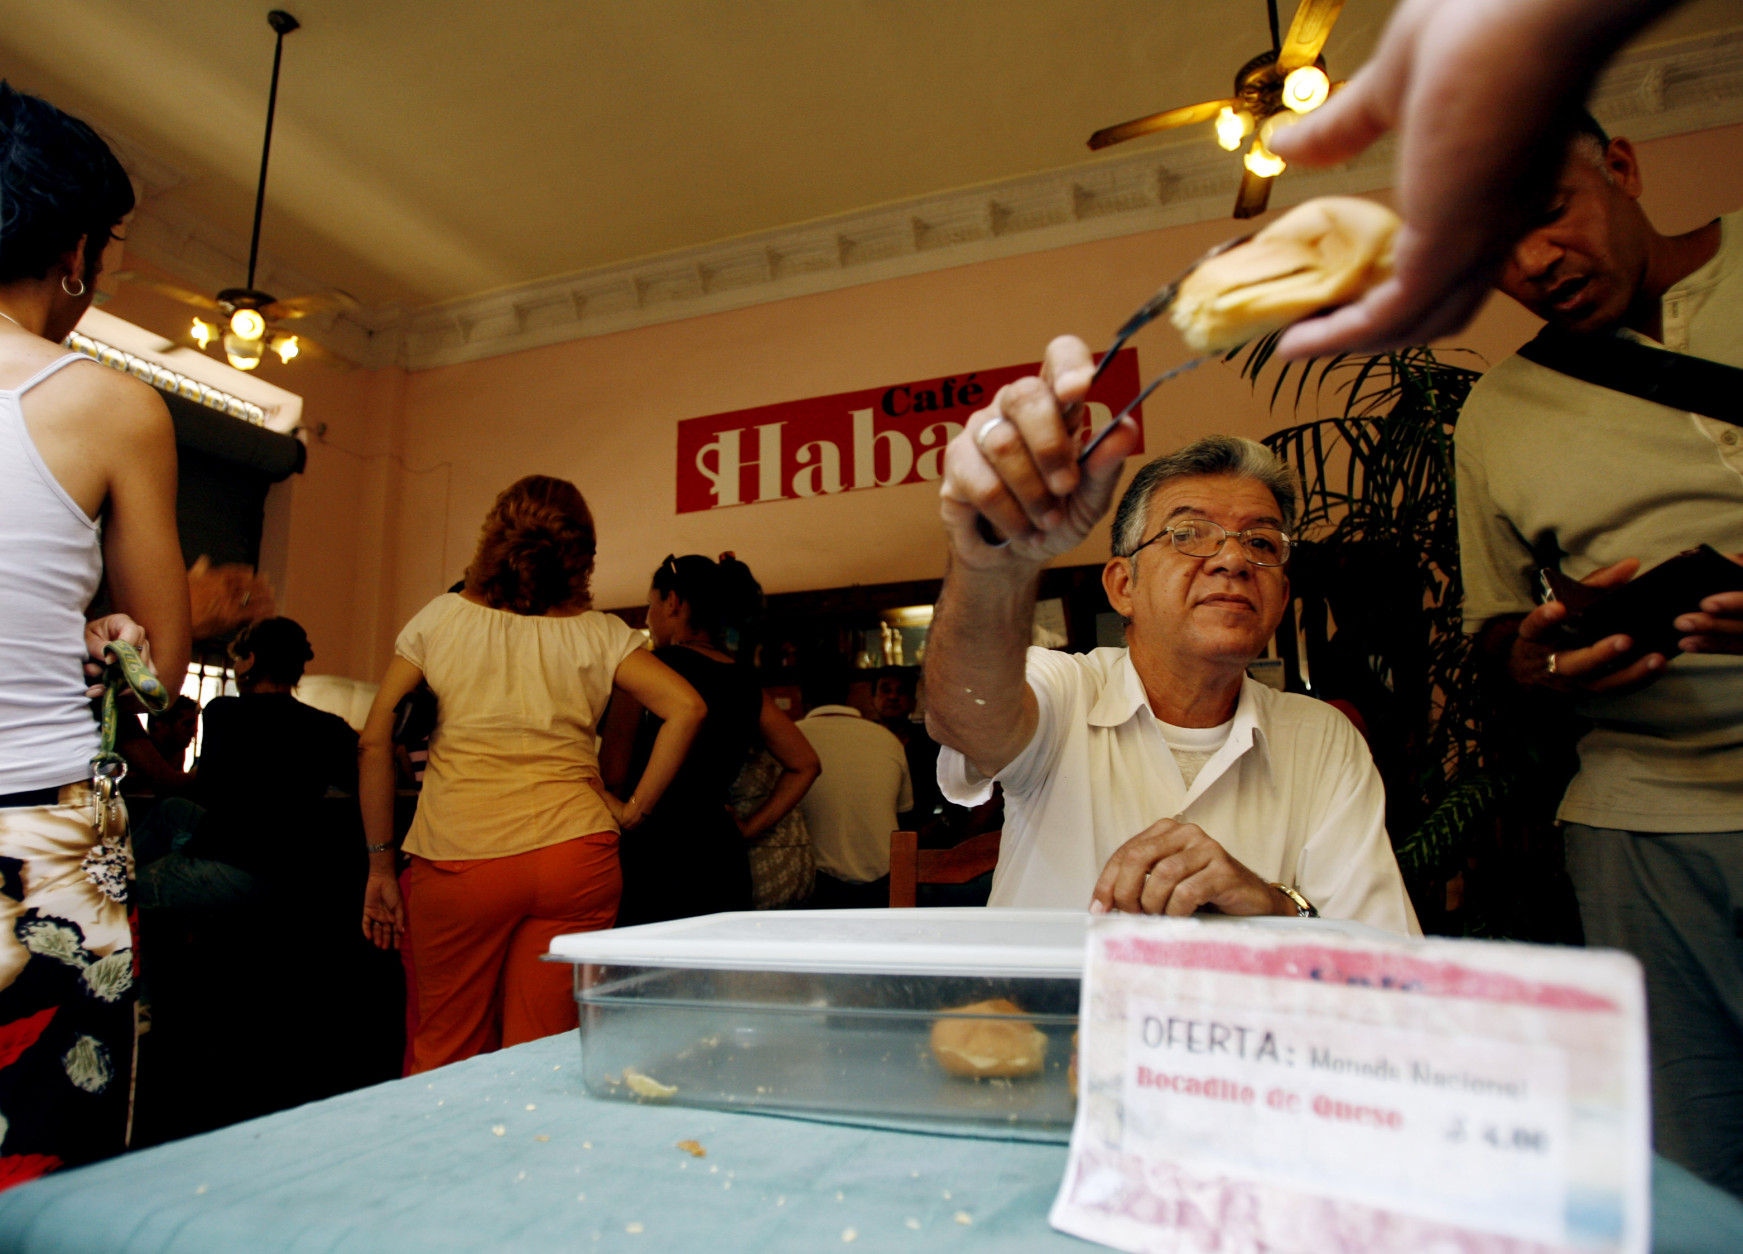 A man sells snacks as Cuban workers take a coffee break at a snack bar in in Old Havana, Monday, June 11, 2007. One of the largest concentrations of venders selling street food for Cuban pesos can be found on Havana's bustling Obispo Street. (AP Photo/Javier Galeano)